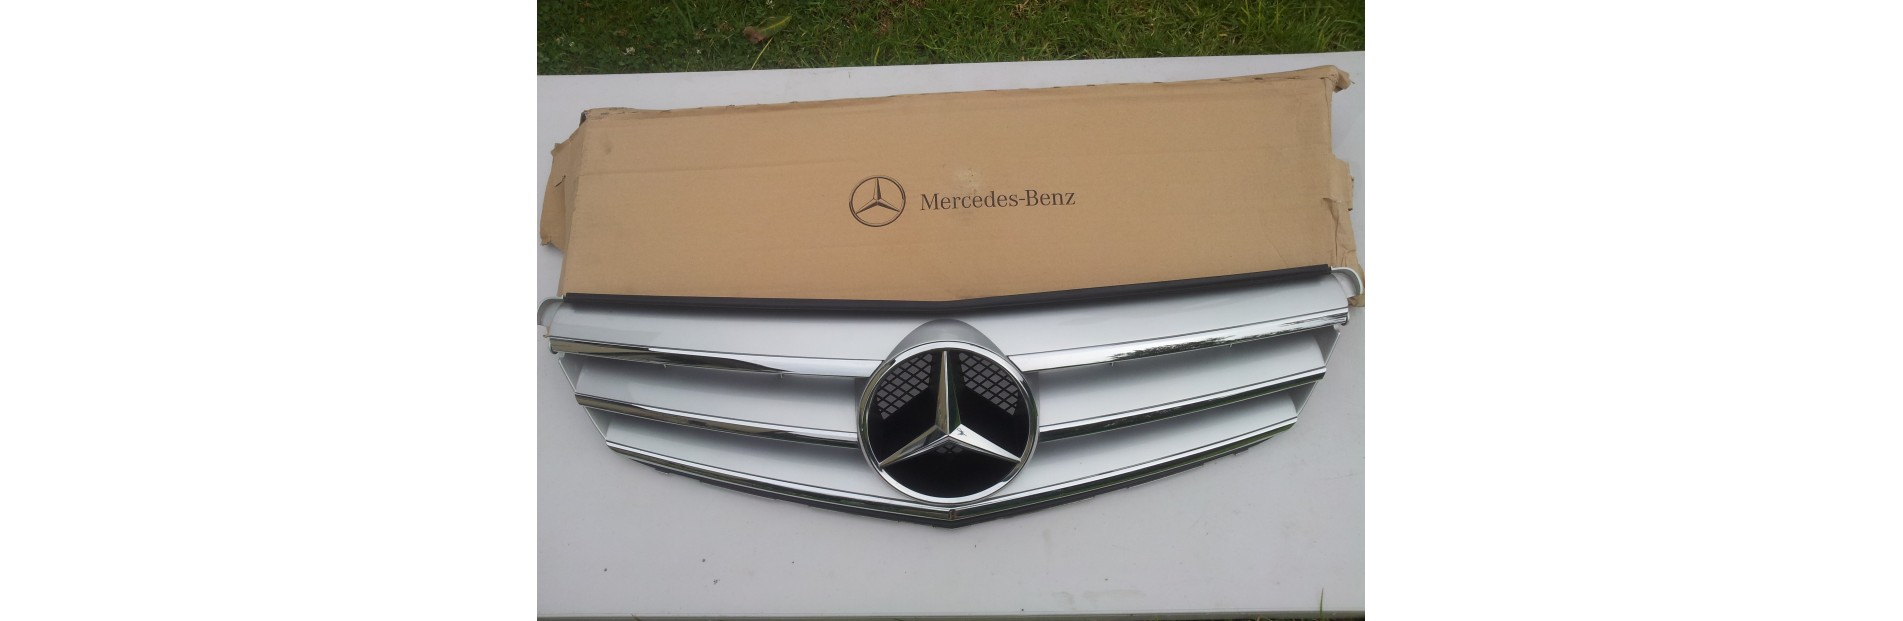 Radiator grille Mercedes-Benz C-Class W204